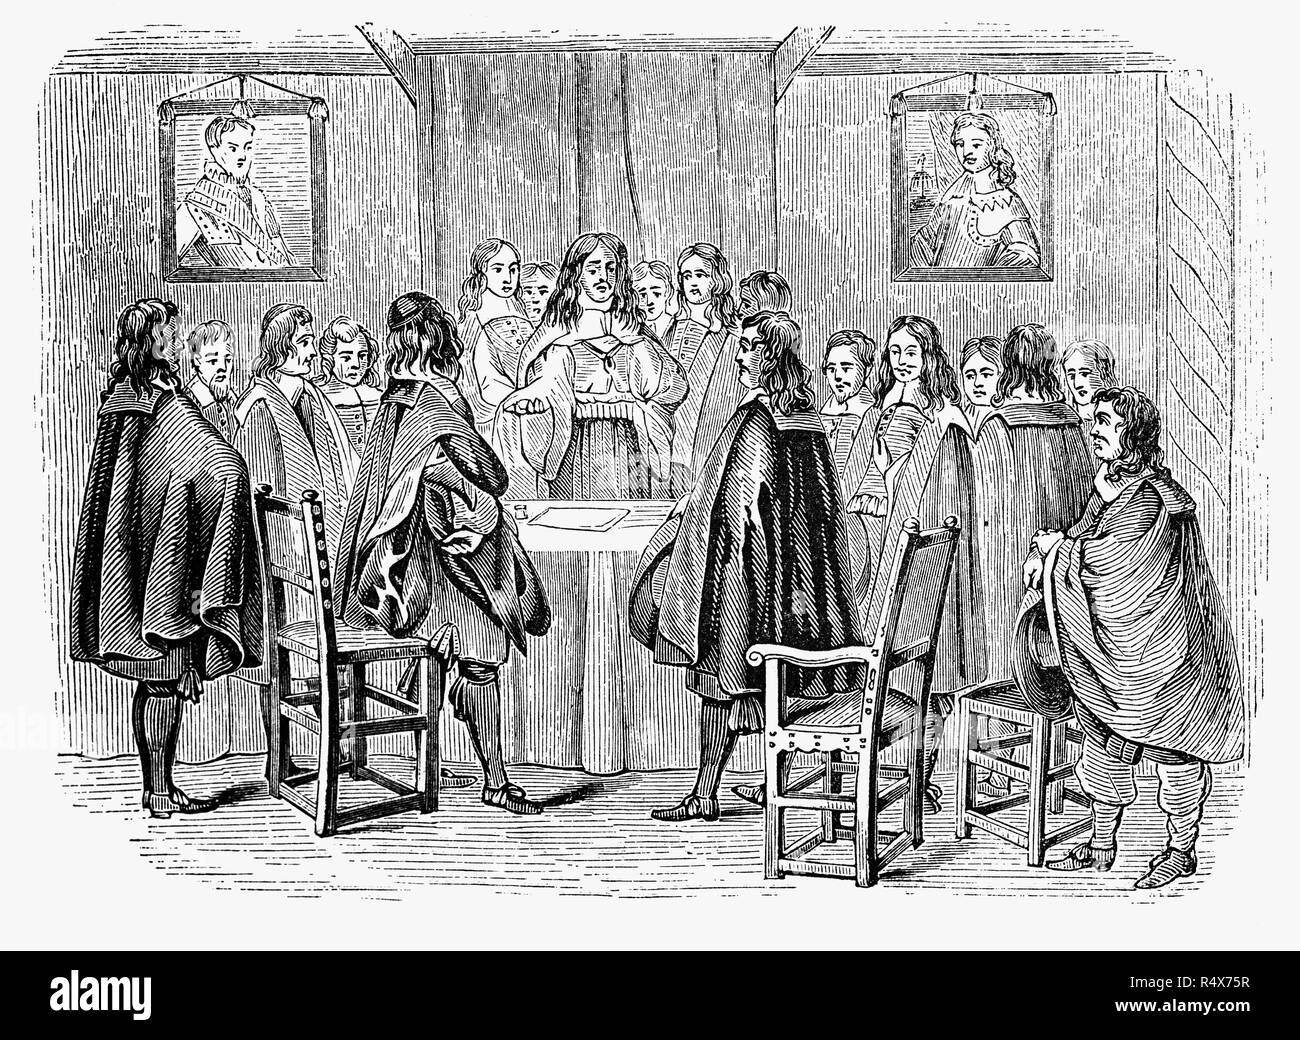 The English ambassadors at the Hague arranging the terms of Charles II's restoration. After the death of Cromwell in 1658, Charles's chances of regaining the Crown seemed slim as Cromwell was succeeded as Lord Protector by his son, Richard. However, the new Lord Protector had little experience of either military or civil administration and formally renounced power nine months after succeeding.  The new Parliament assembled on 25 April 1660, and soon afterwards welcomed the Declaration of Breda, in which Charles promised lenience and tolerance. - Stock Image